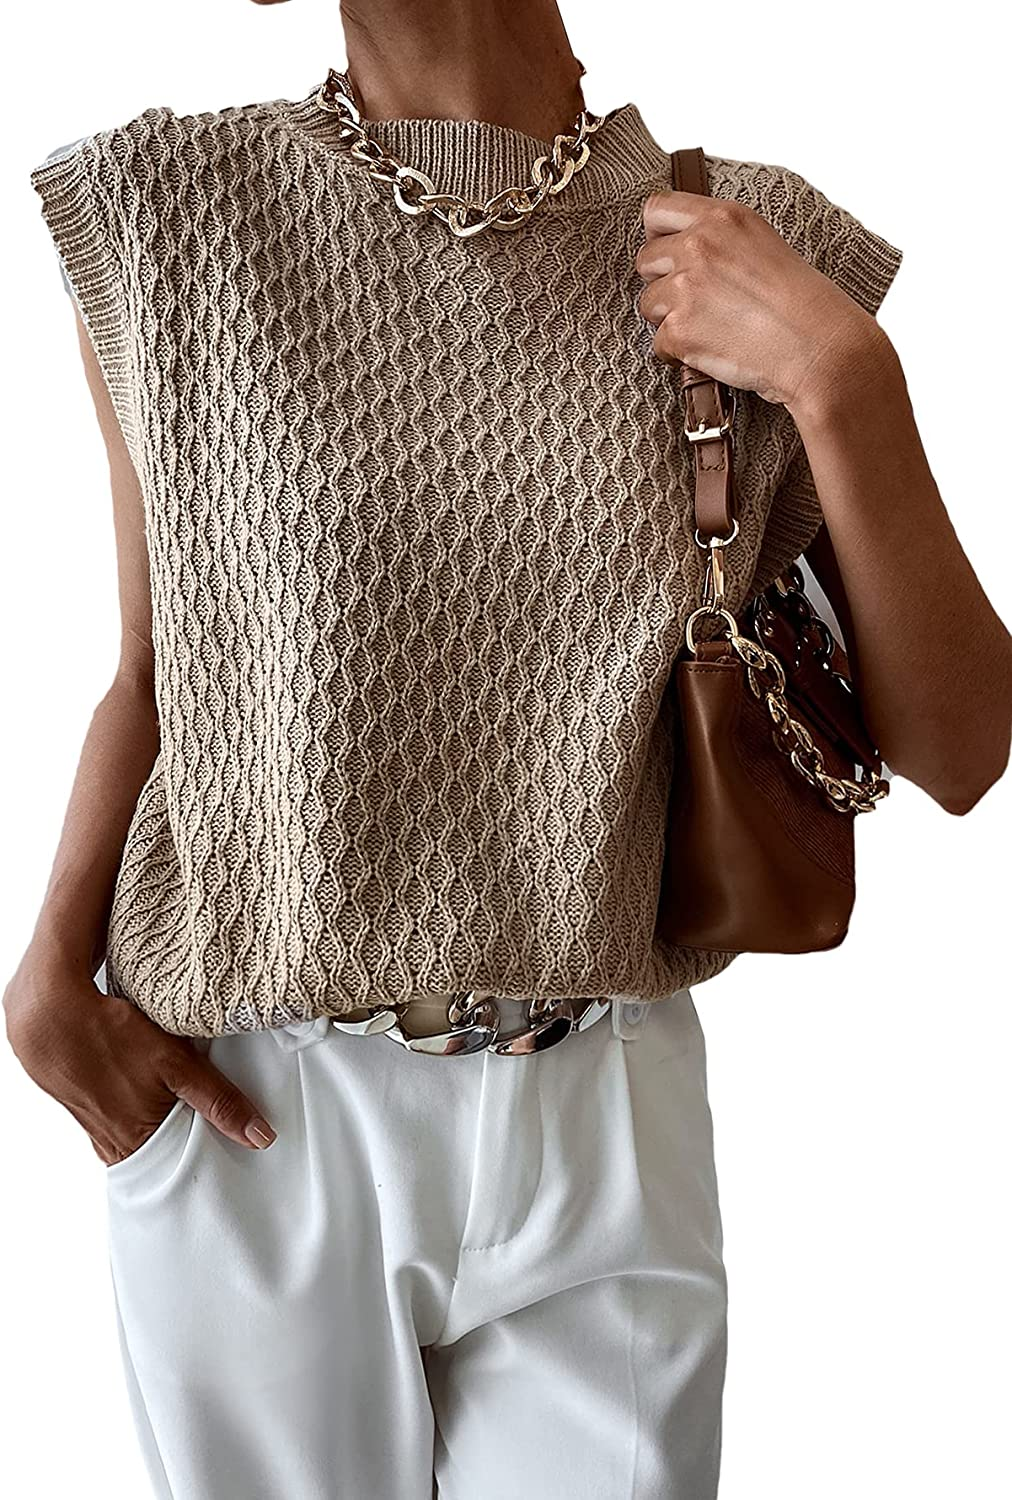 SheIn Women's Argyle Sweater Vest Sleeveless Casual Round Neck Oversized Knit Pullover Tops